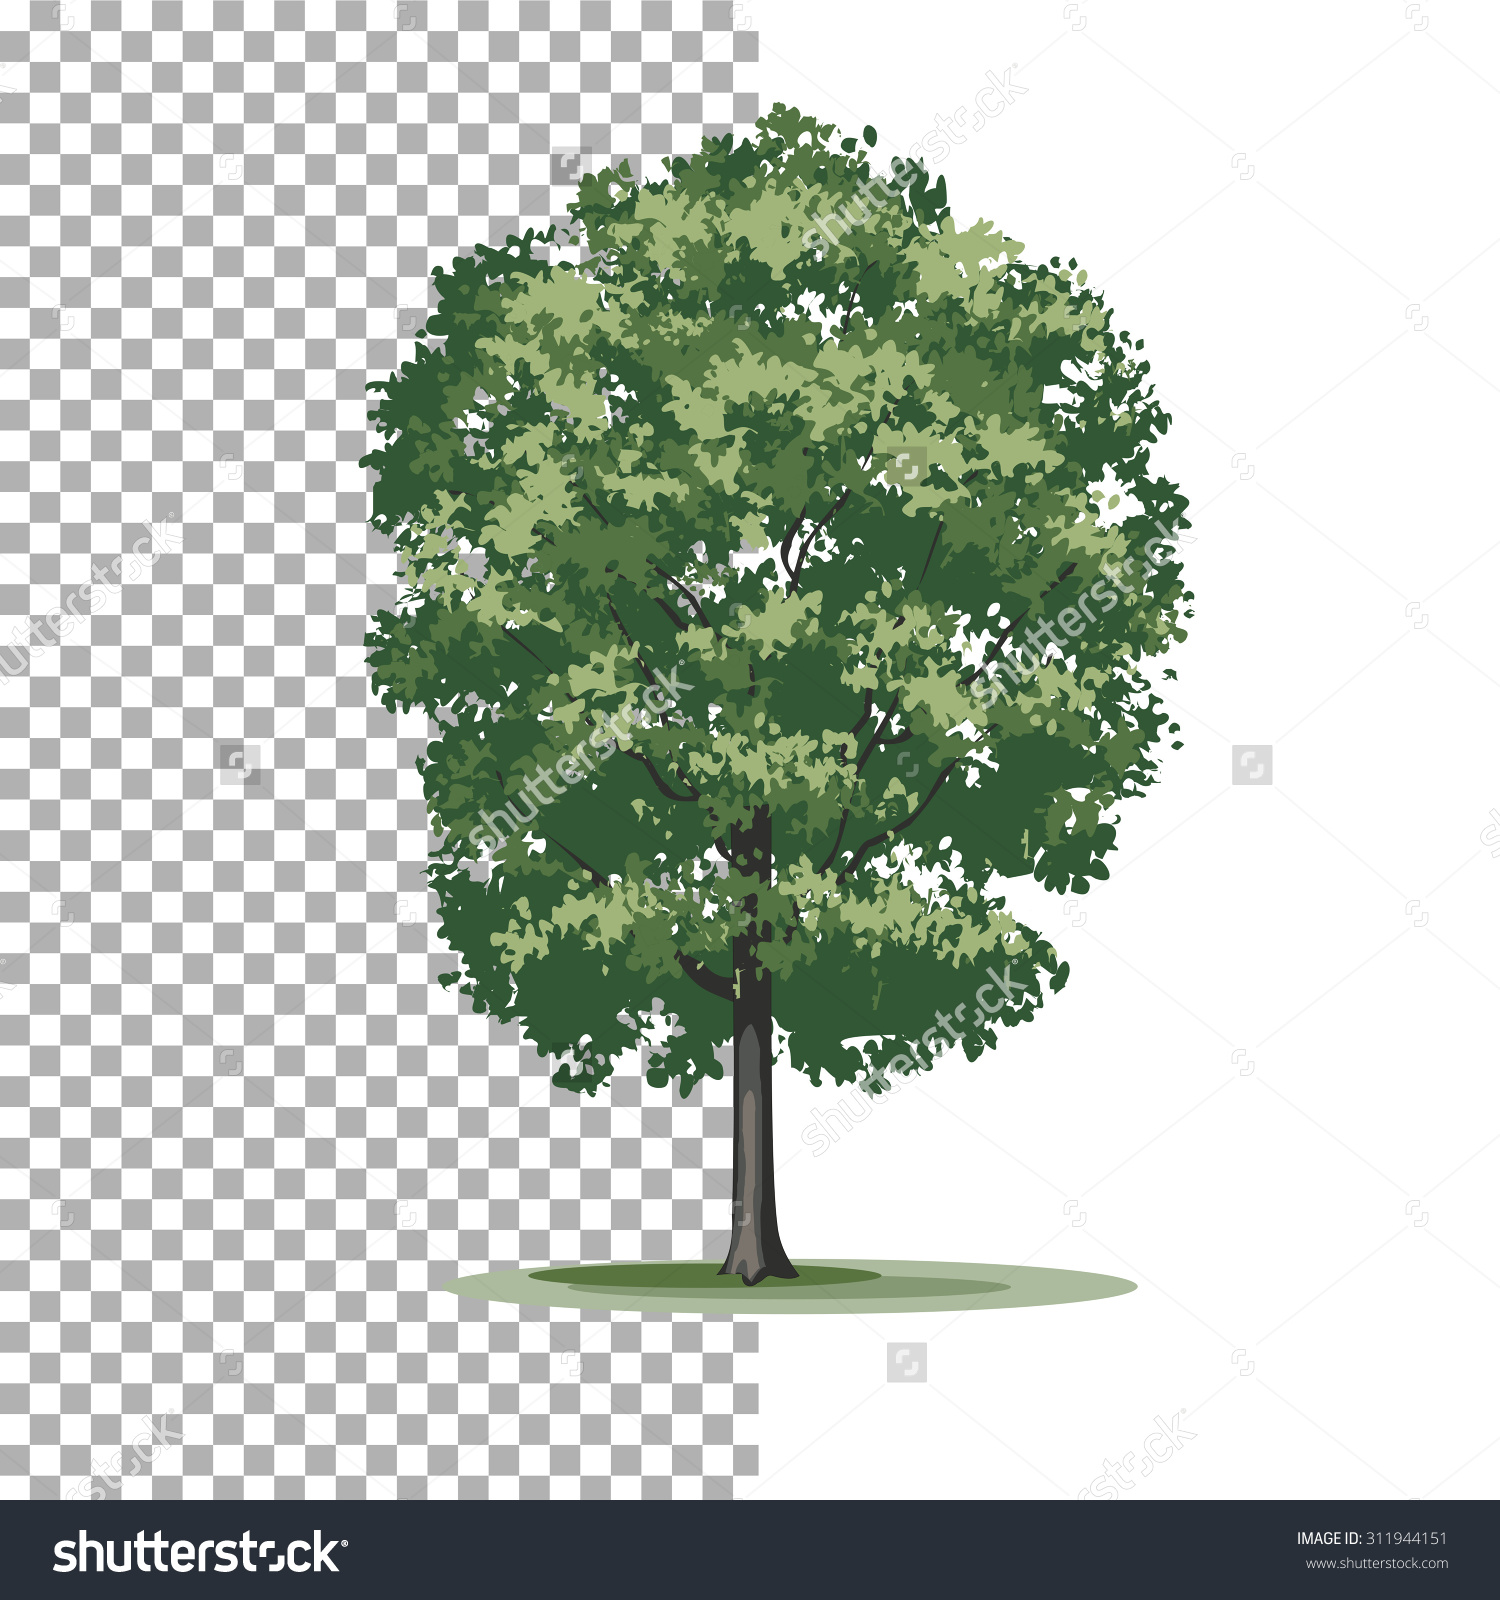 Cottonwood Trees clipart #17, Download drawings